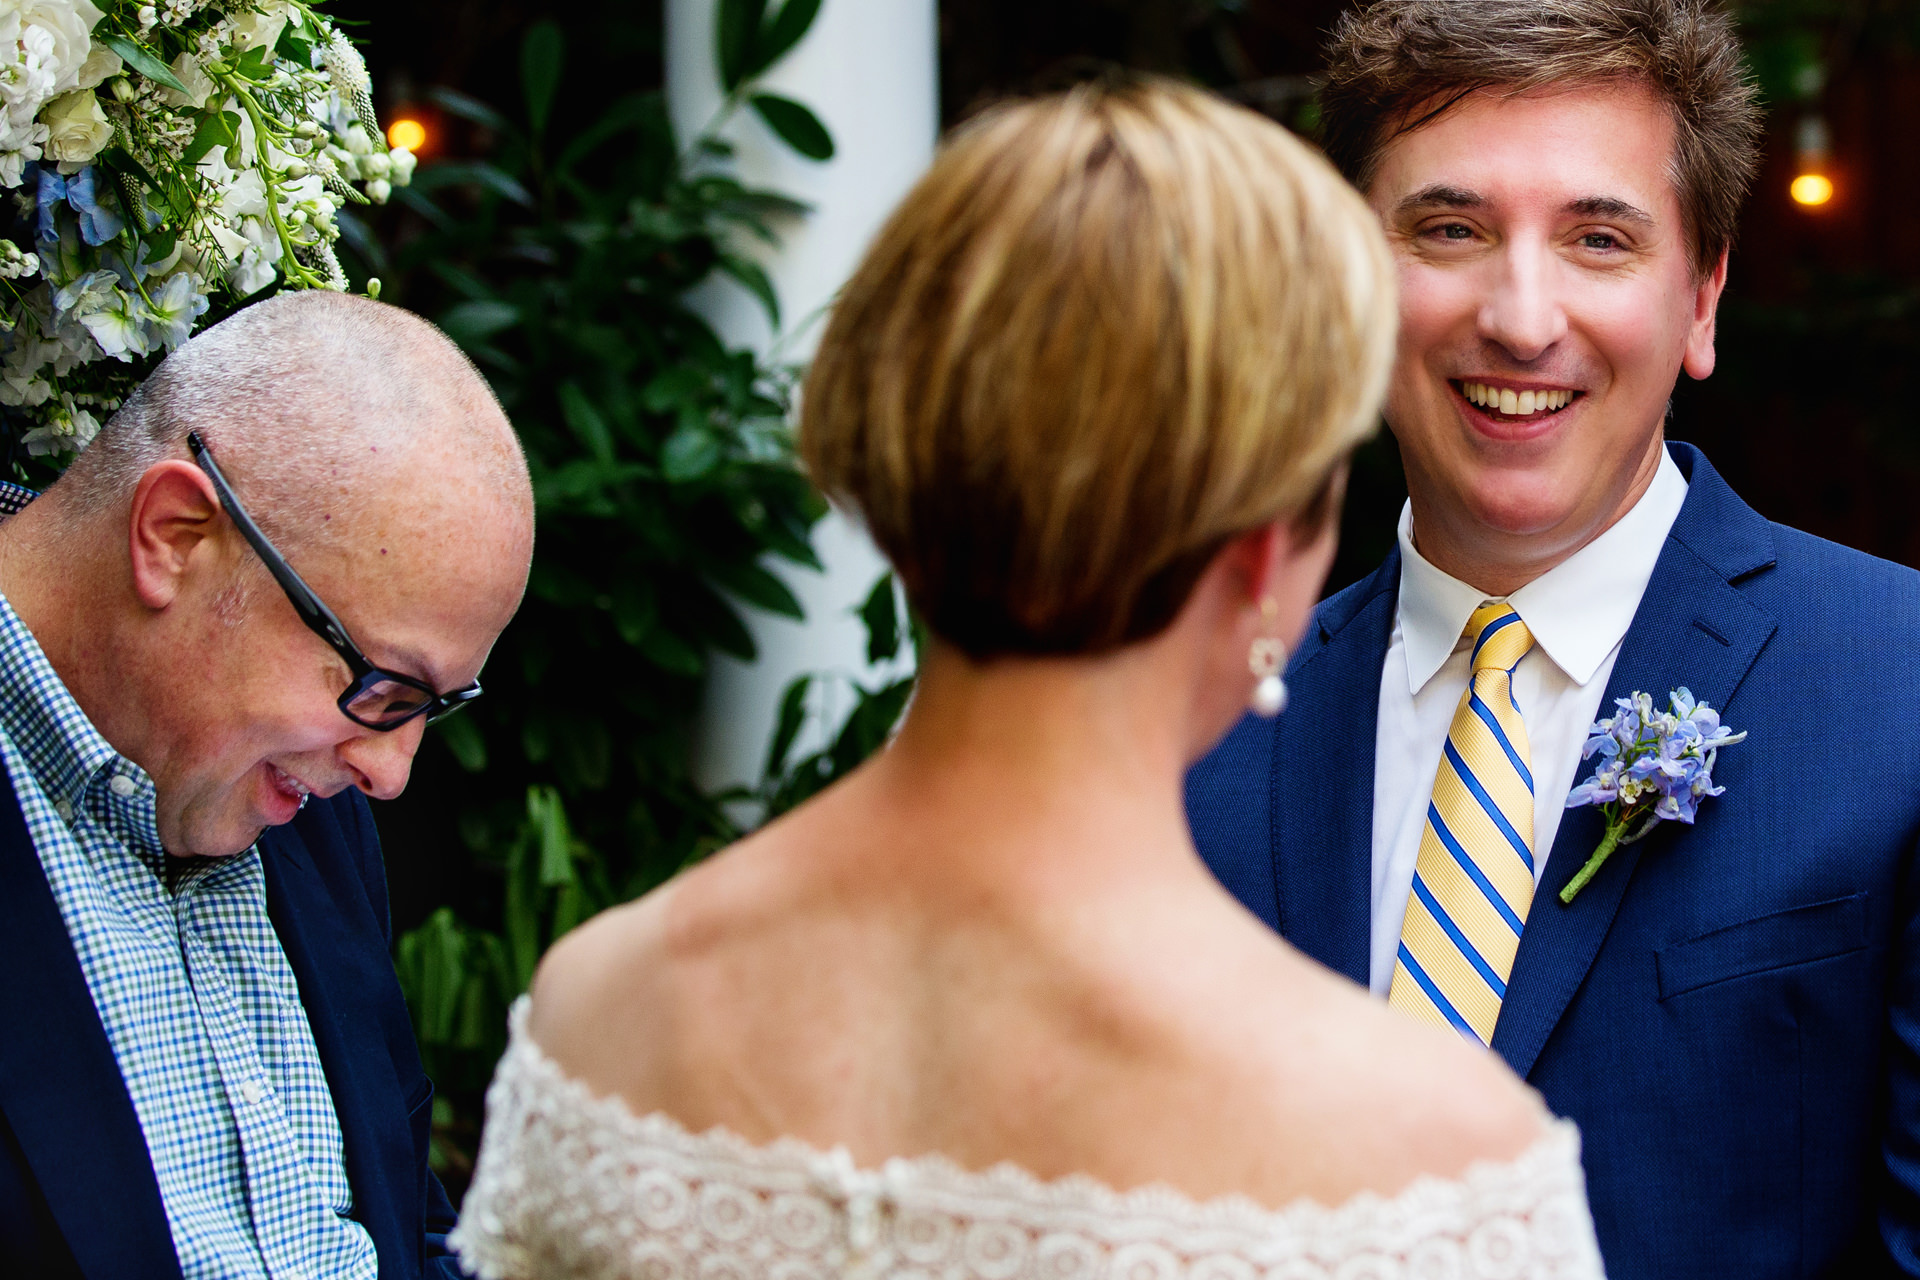 NJ Outdoor Small Elopement Ceremony Photos | Laughter erupts during the wedding